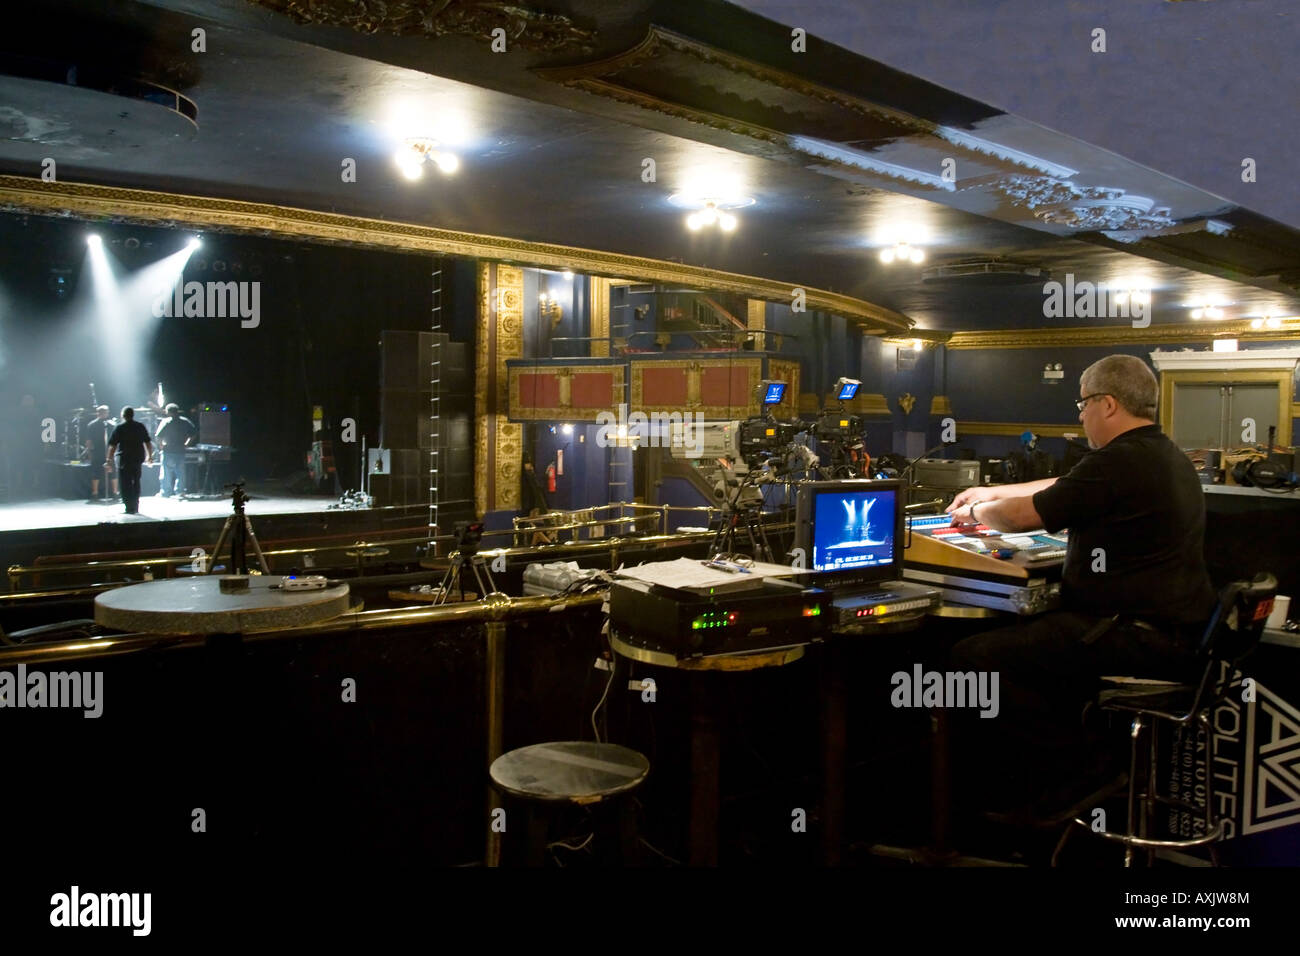 ILLINOIS Chicago Lighting setup for video taping of performance by Keyshia Cole at the Vic Theater - Stock Image